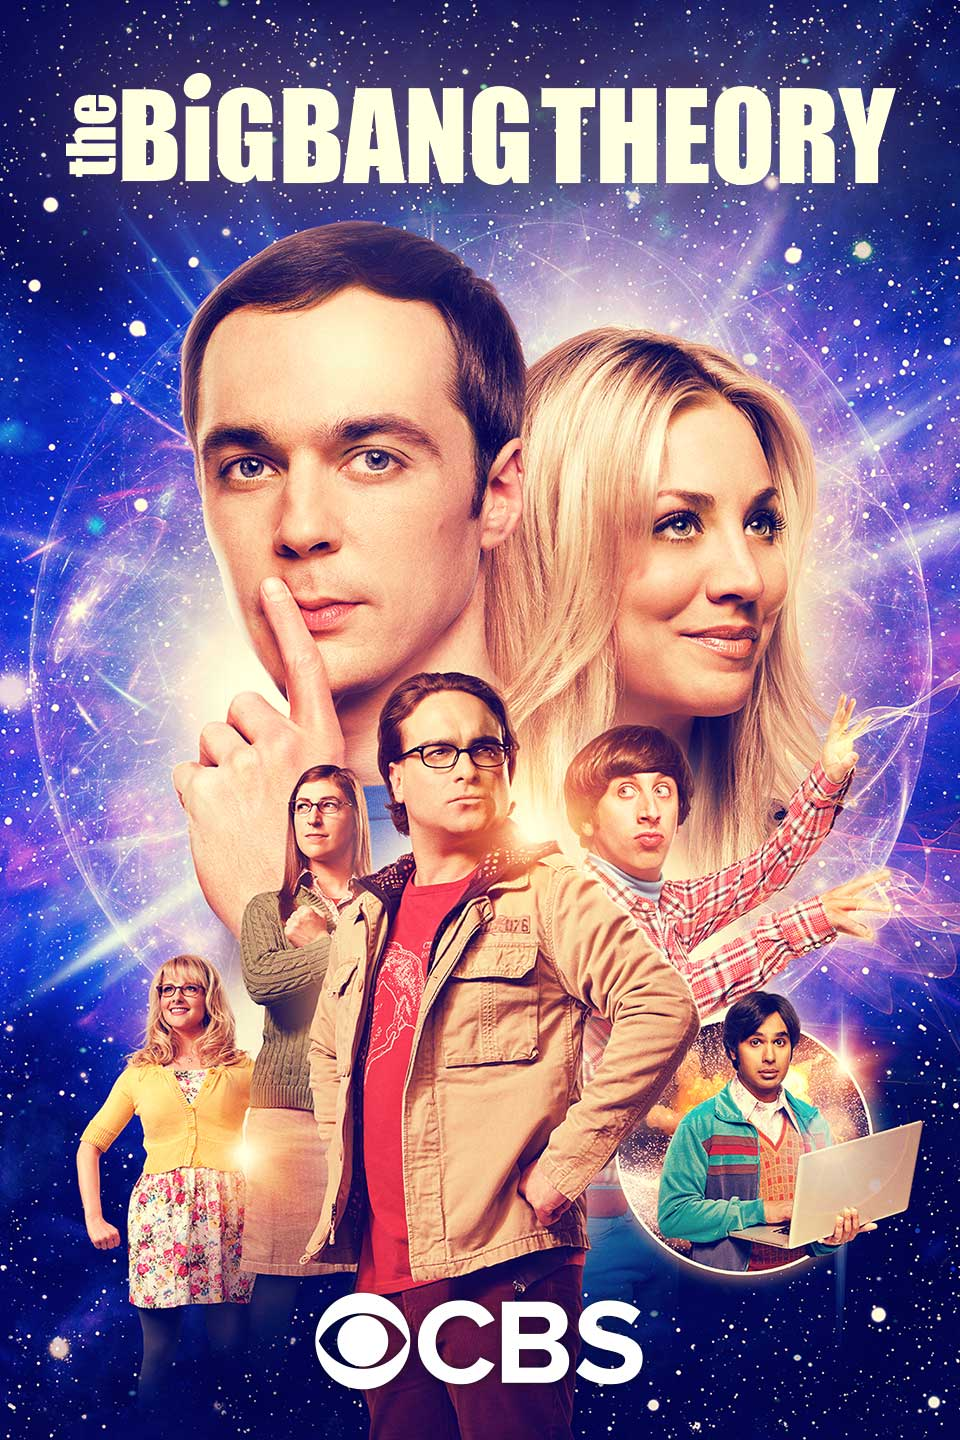 9905854b7bc The Big Bang Theory (TV Series 2007– ) - IMDb